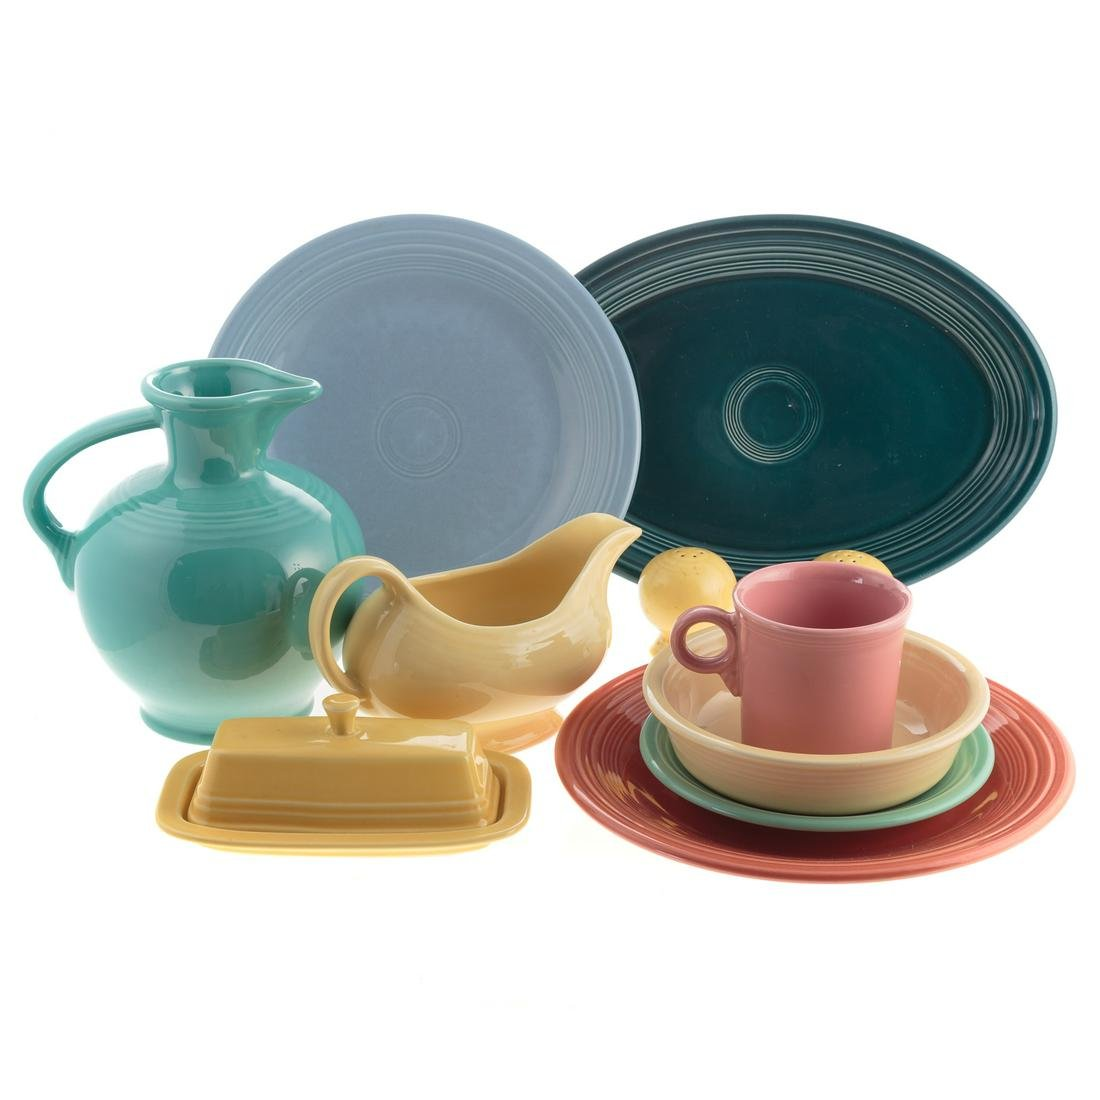 Fiestaware China Partial Dinner Service